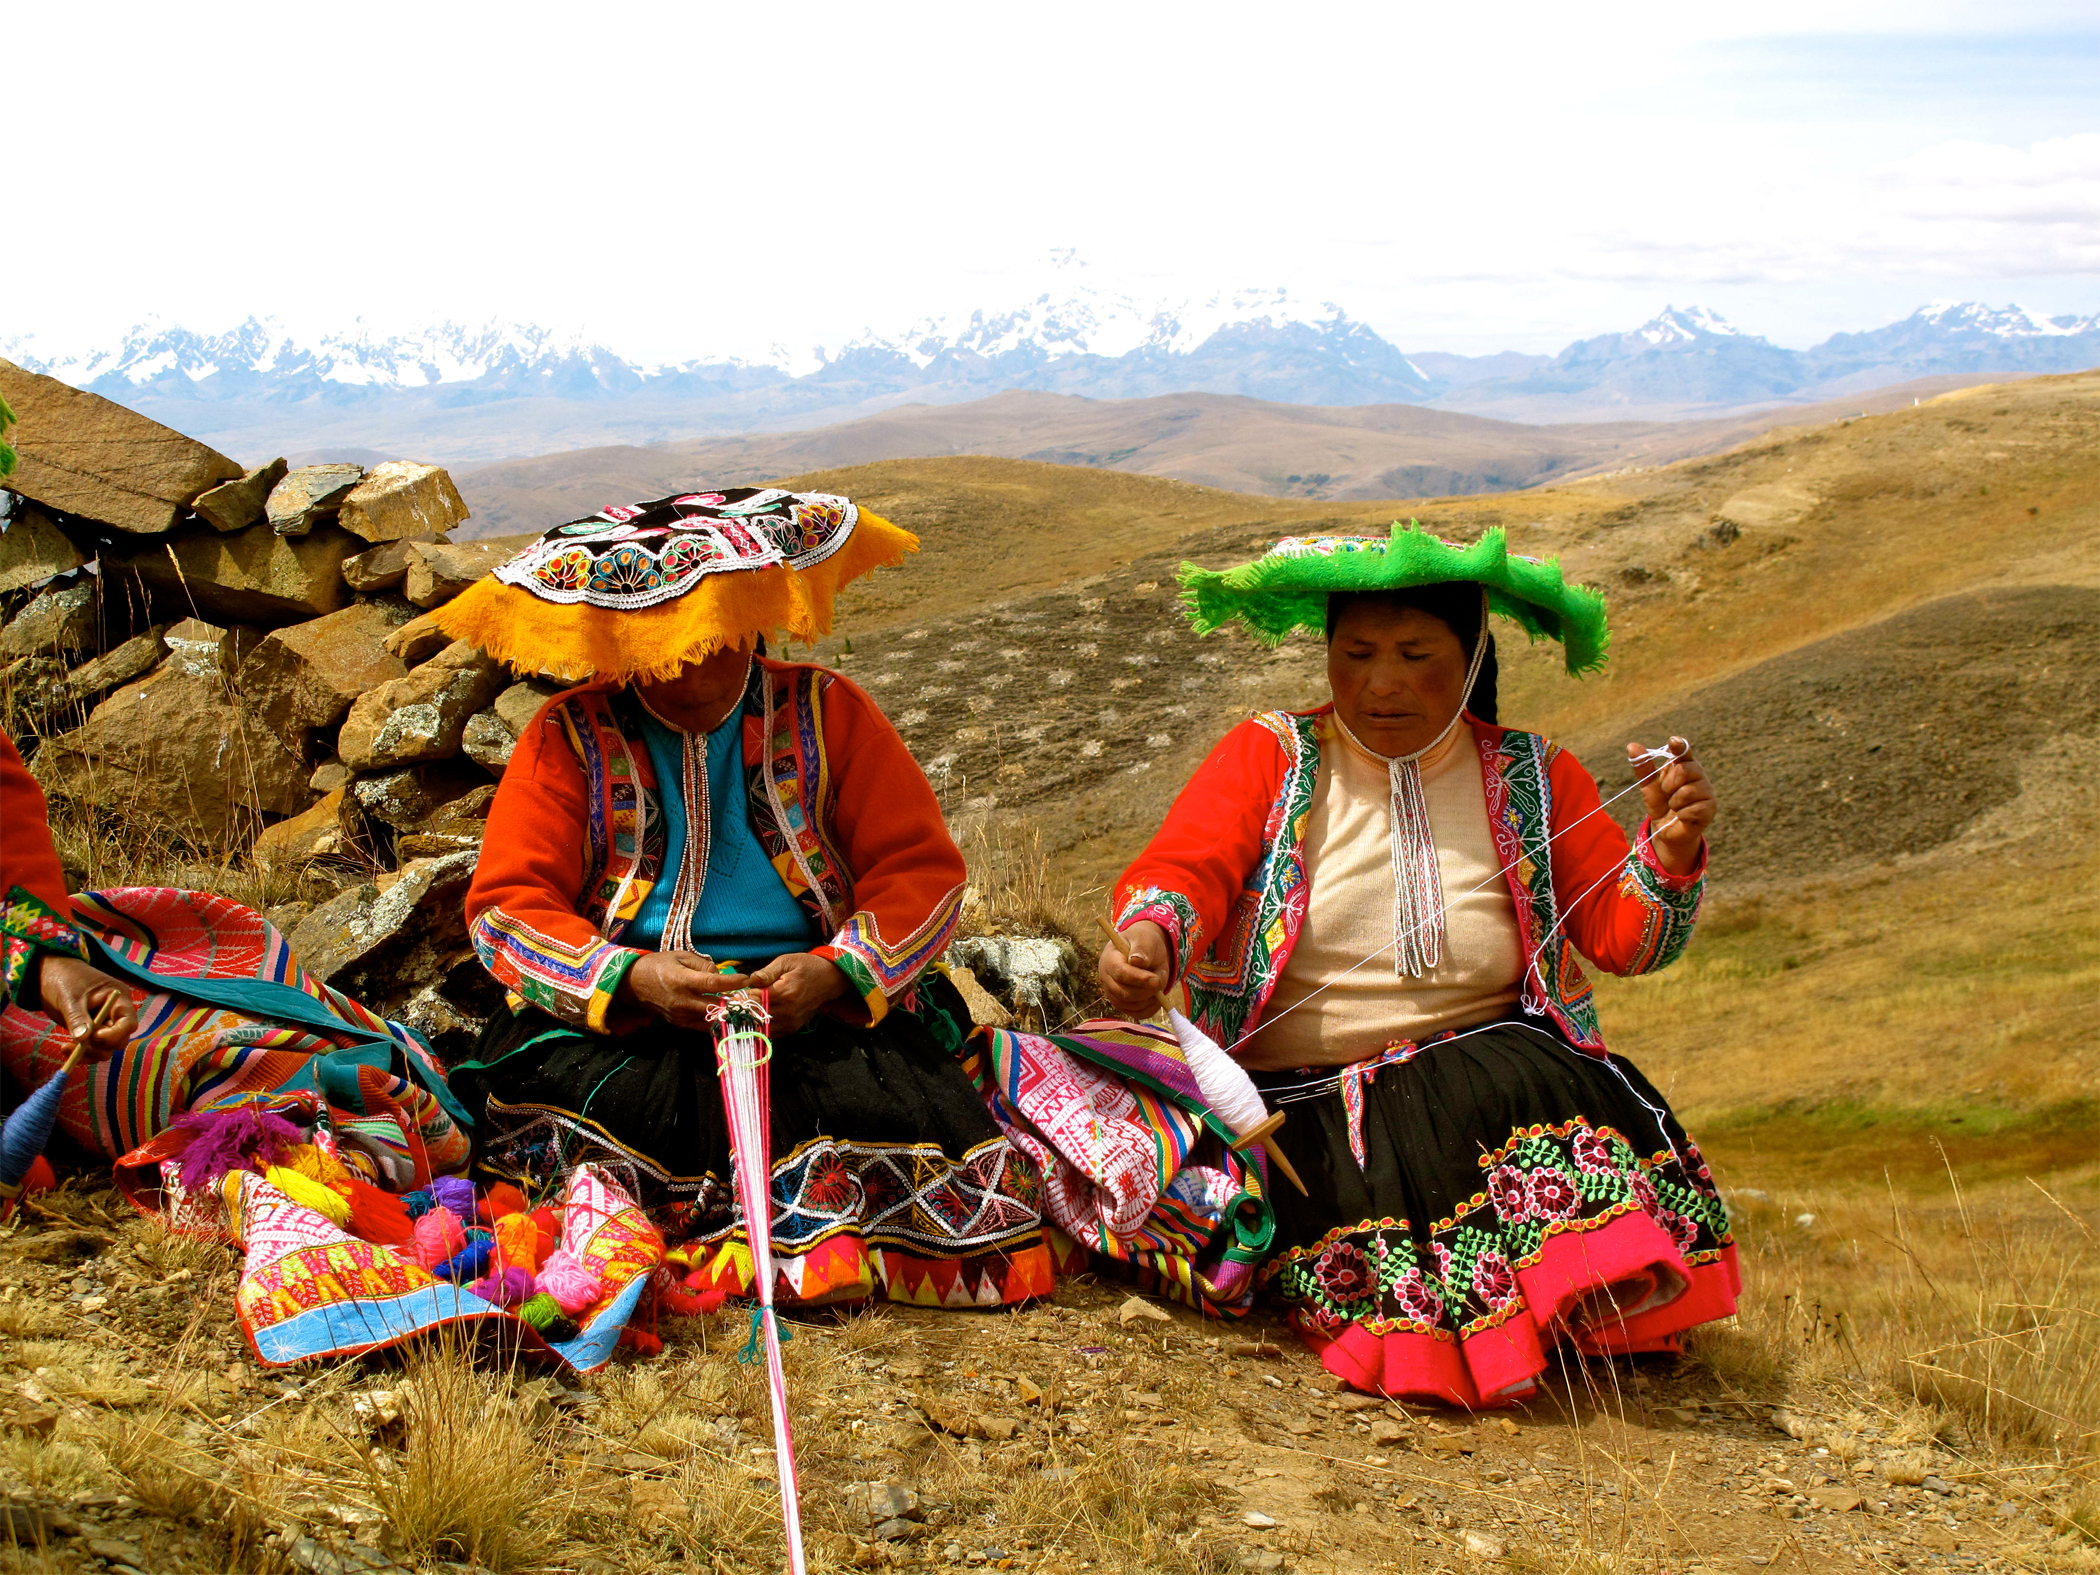 Andean weavers in Cuyuni, a village outside of Cuzco